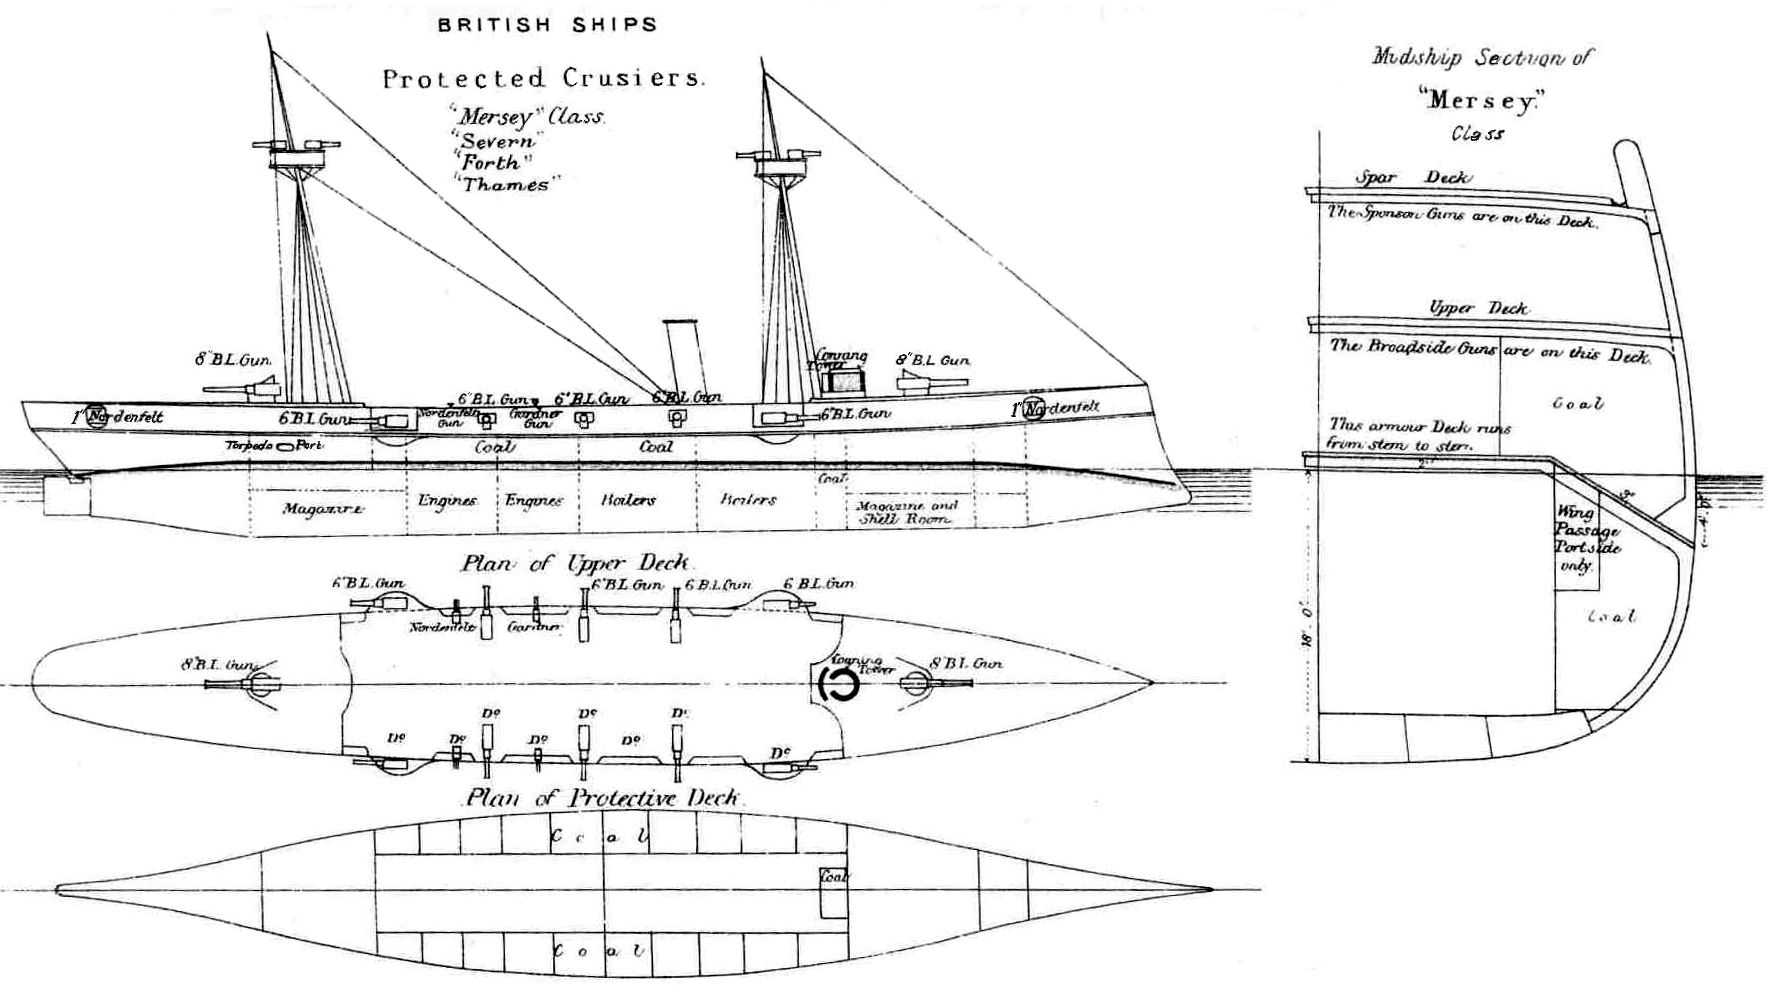 Elevation Plan Wiki : File mersey class cruiser elevation deck plan section g